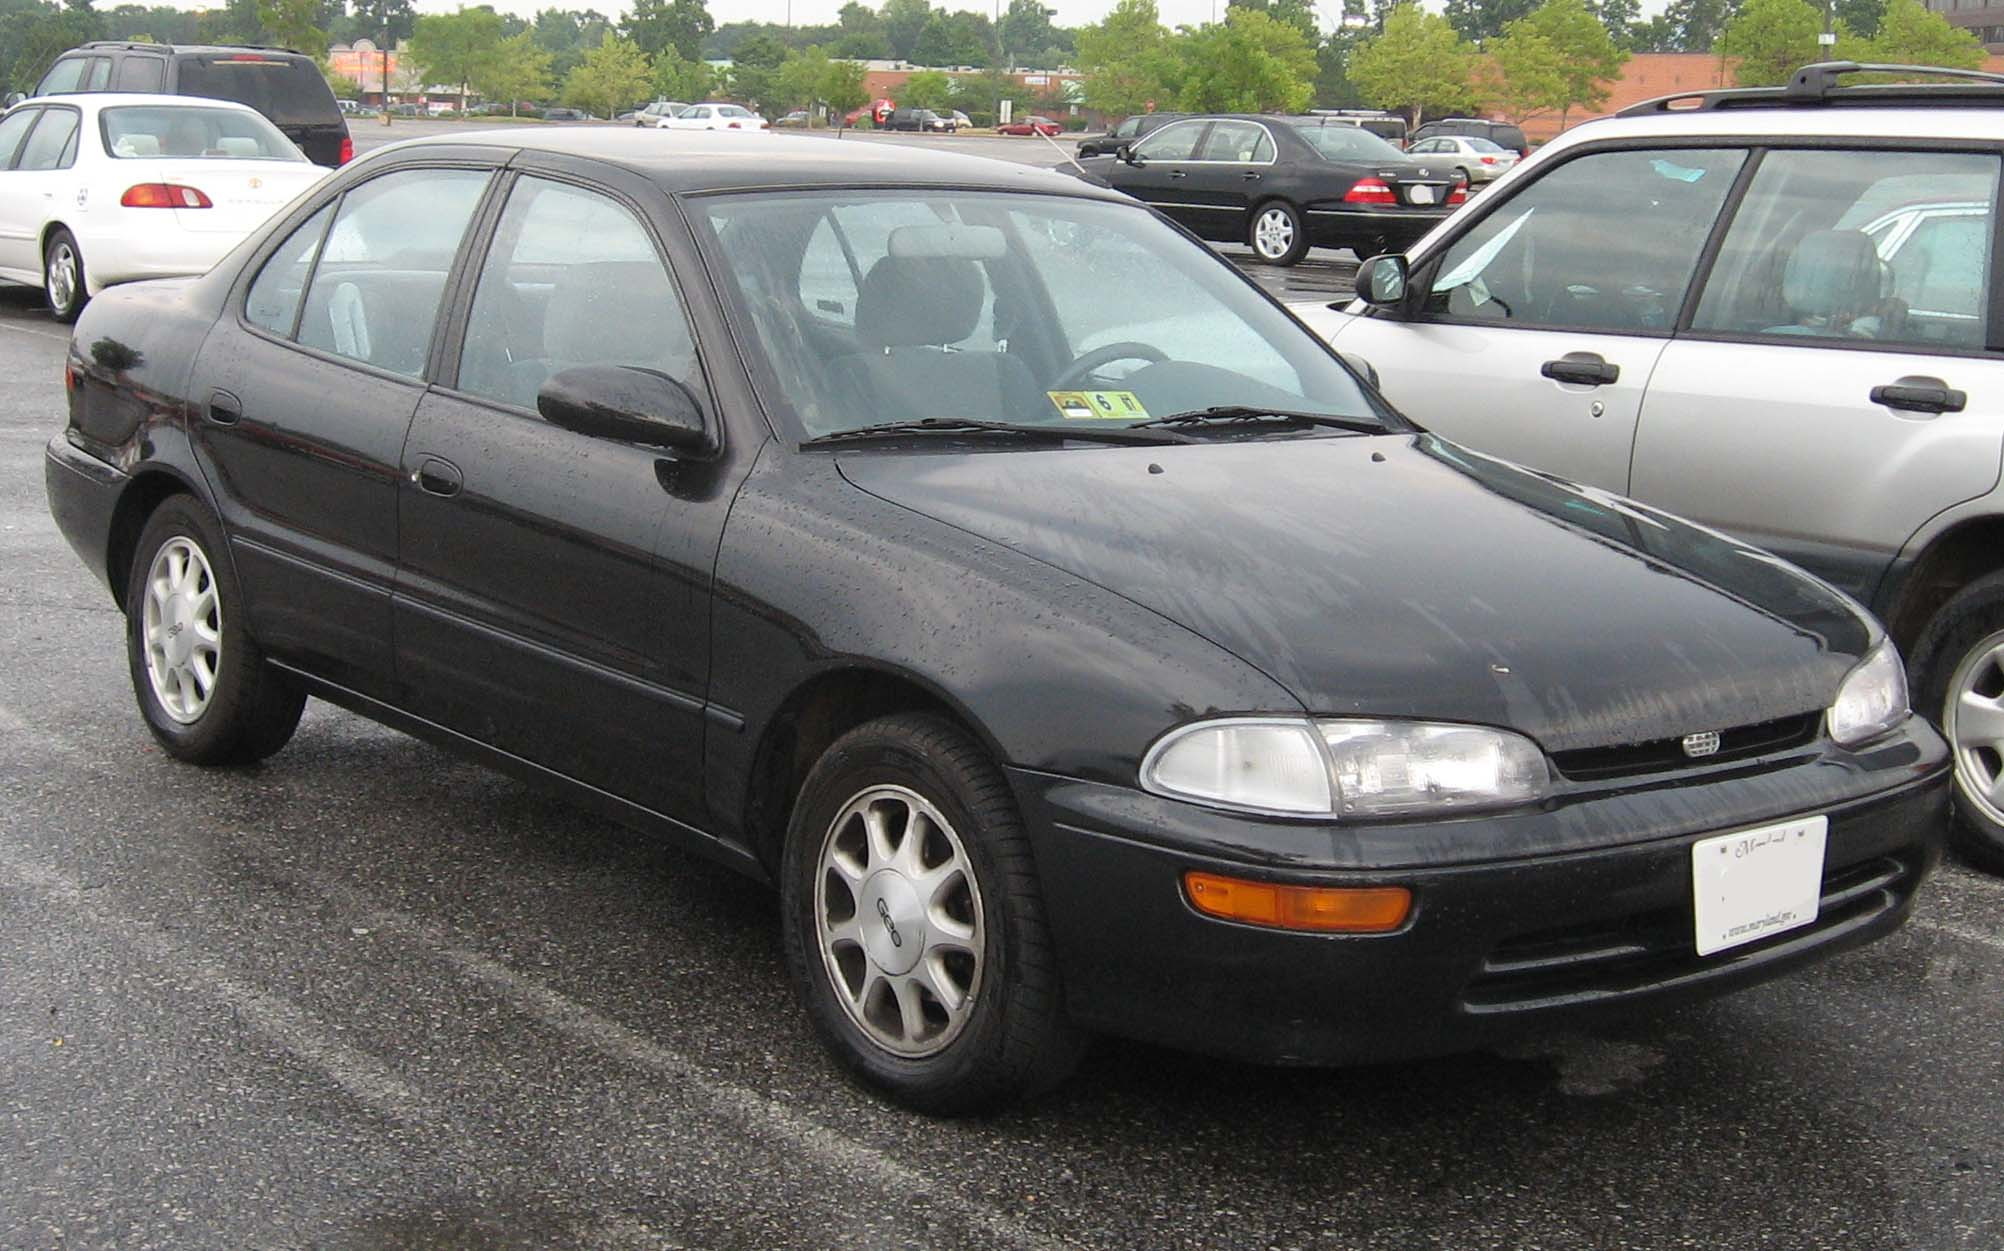 1998 Chevy Prizm Specs All About Chevrolet 1999 Fuse Box Open Source Pictures Information And Auto Database Com